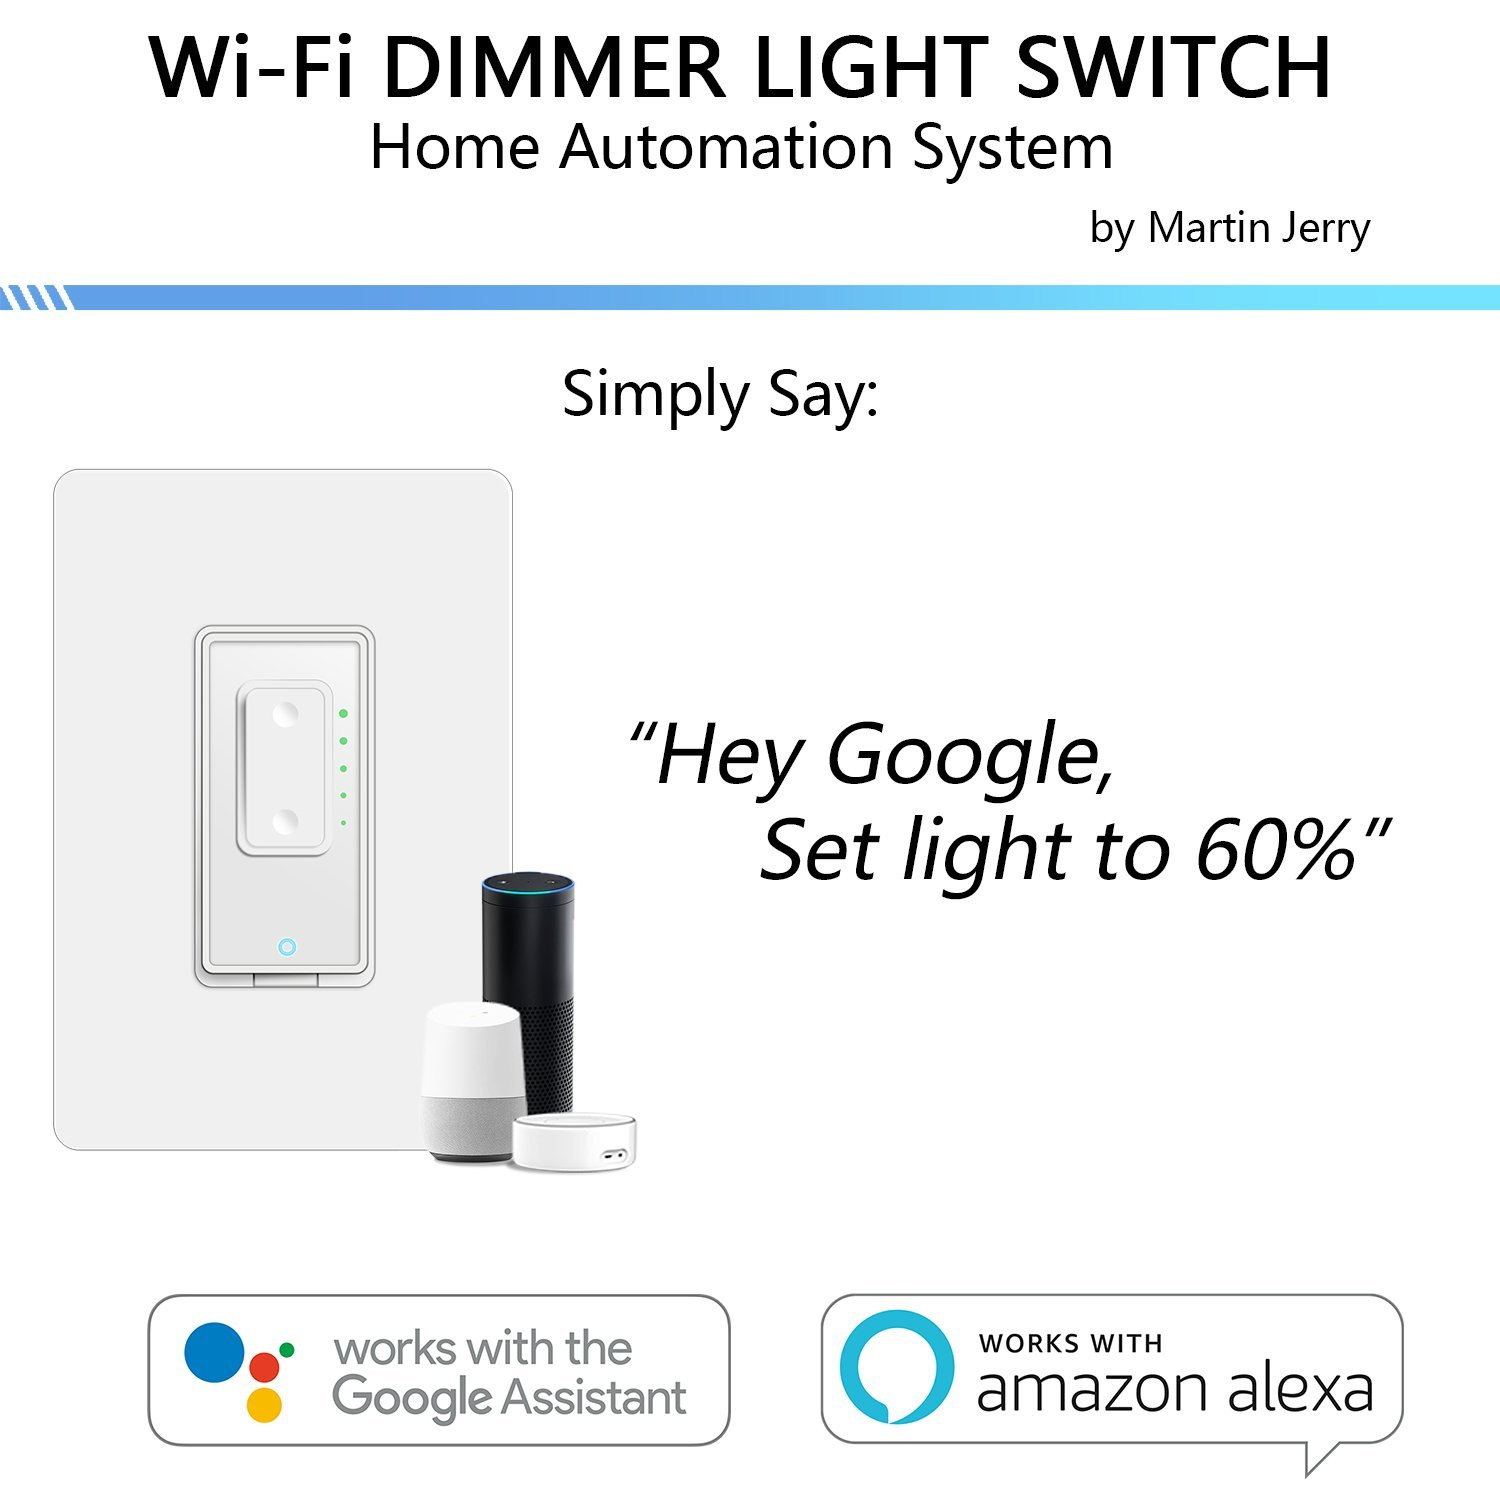 Smart Dimmer Switch by Martin Jerry | SmartLife App, Mains Dimming ONLY, Compatible with Alexa as WiFi Light Switch Dimmer, Single Pole, Works with Google Assistant [For Sale NOW] by Martin Jerry (Image #3)